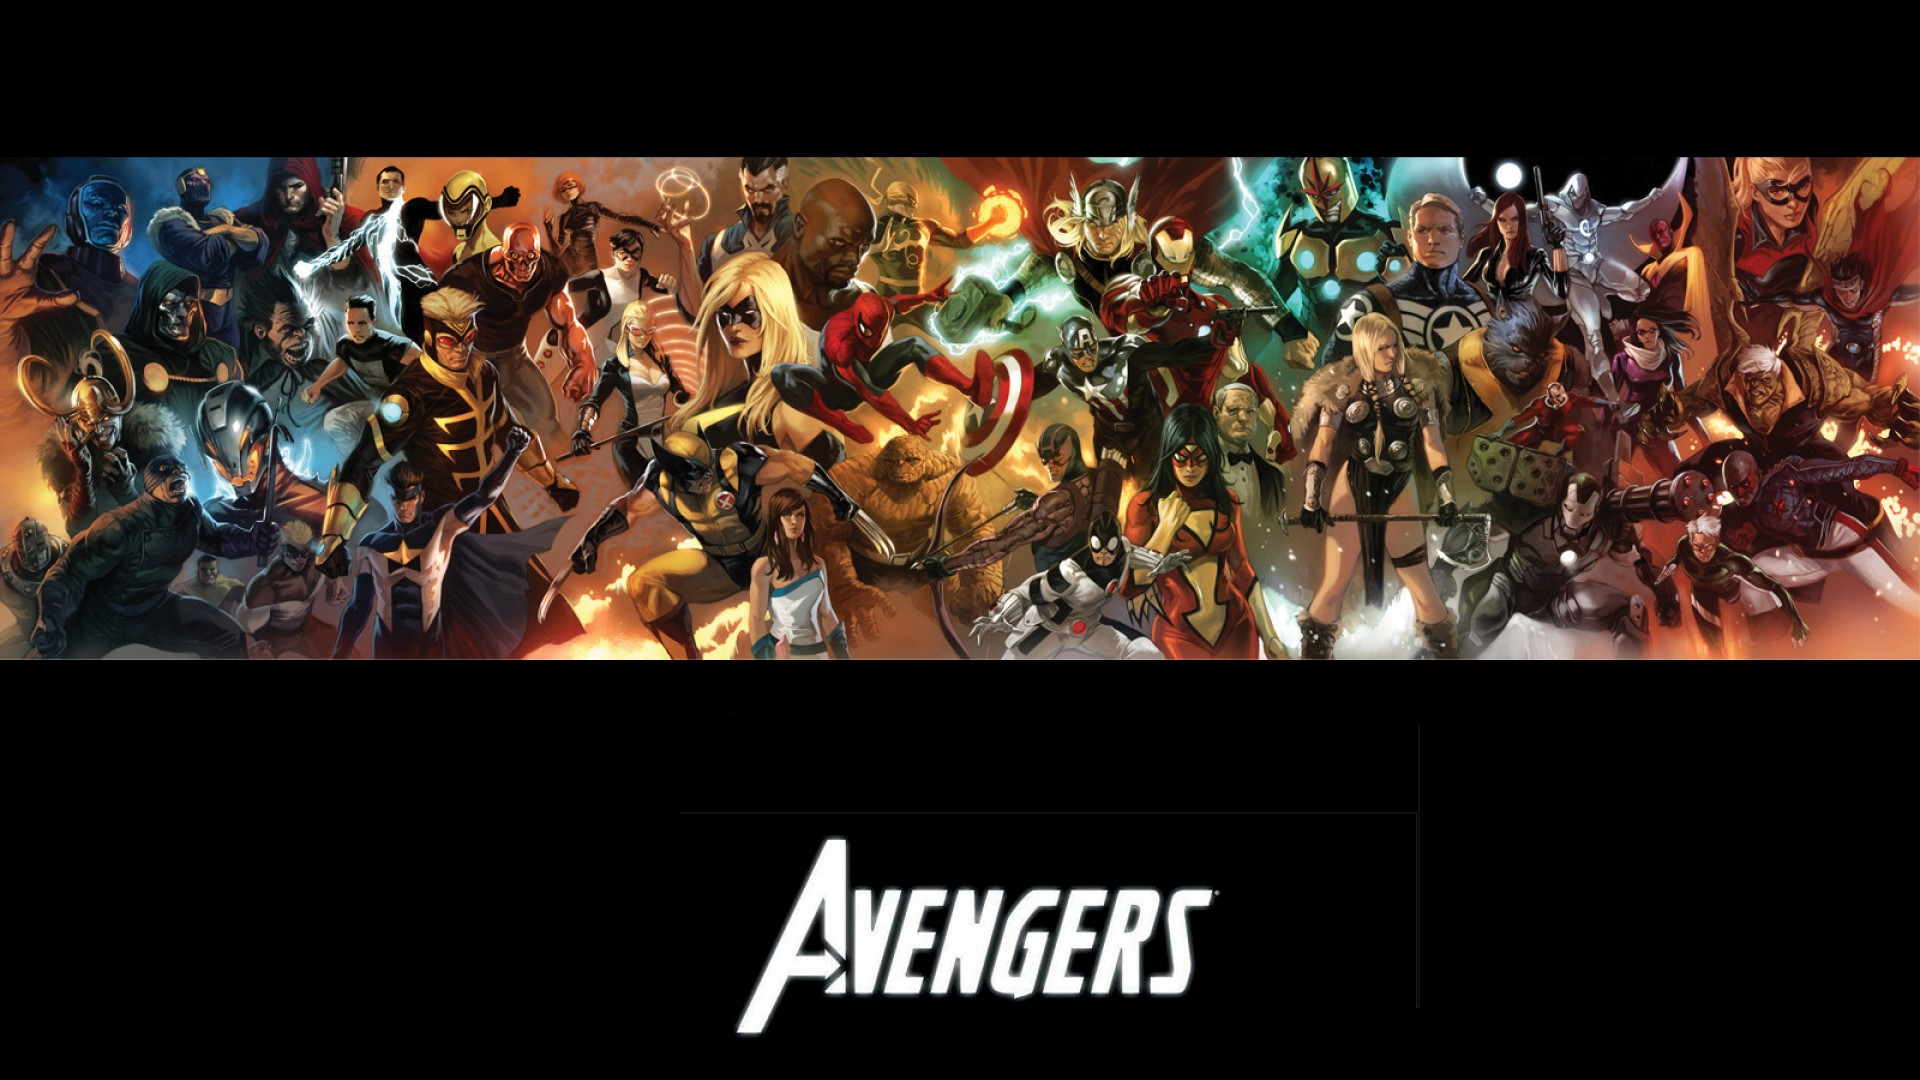 11 Best Hd Wallpapers From The Marvel Universe That You: Avengers HD Wallpapers 1080p